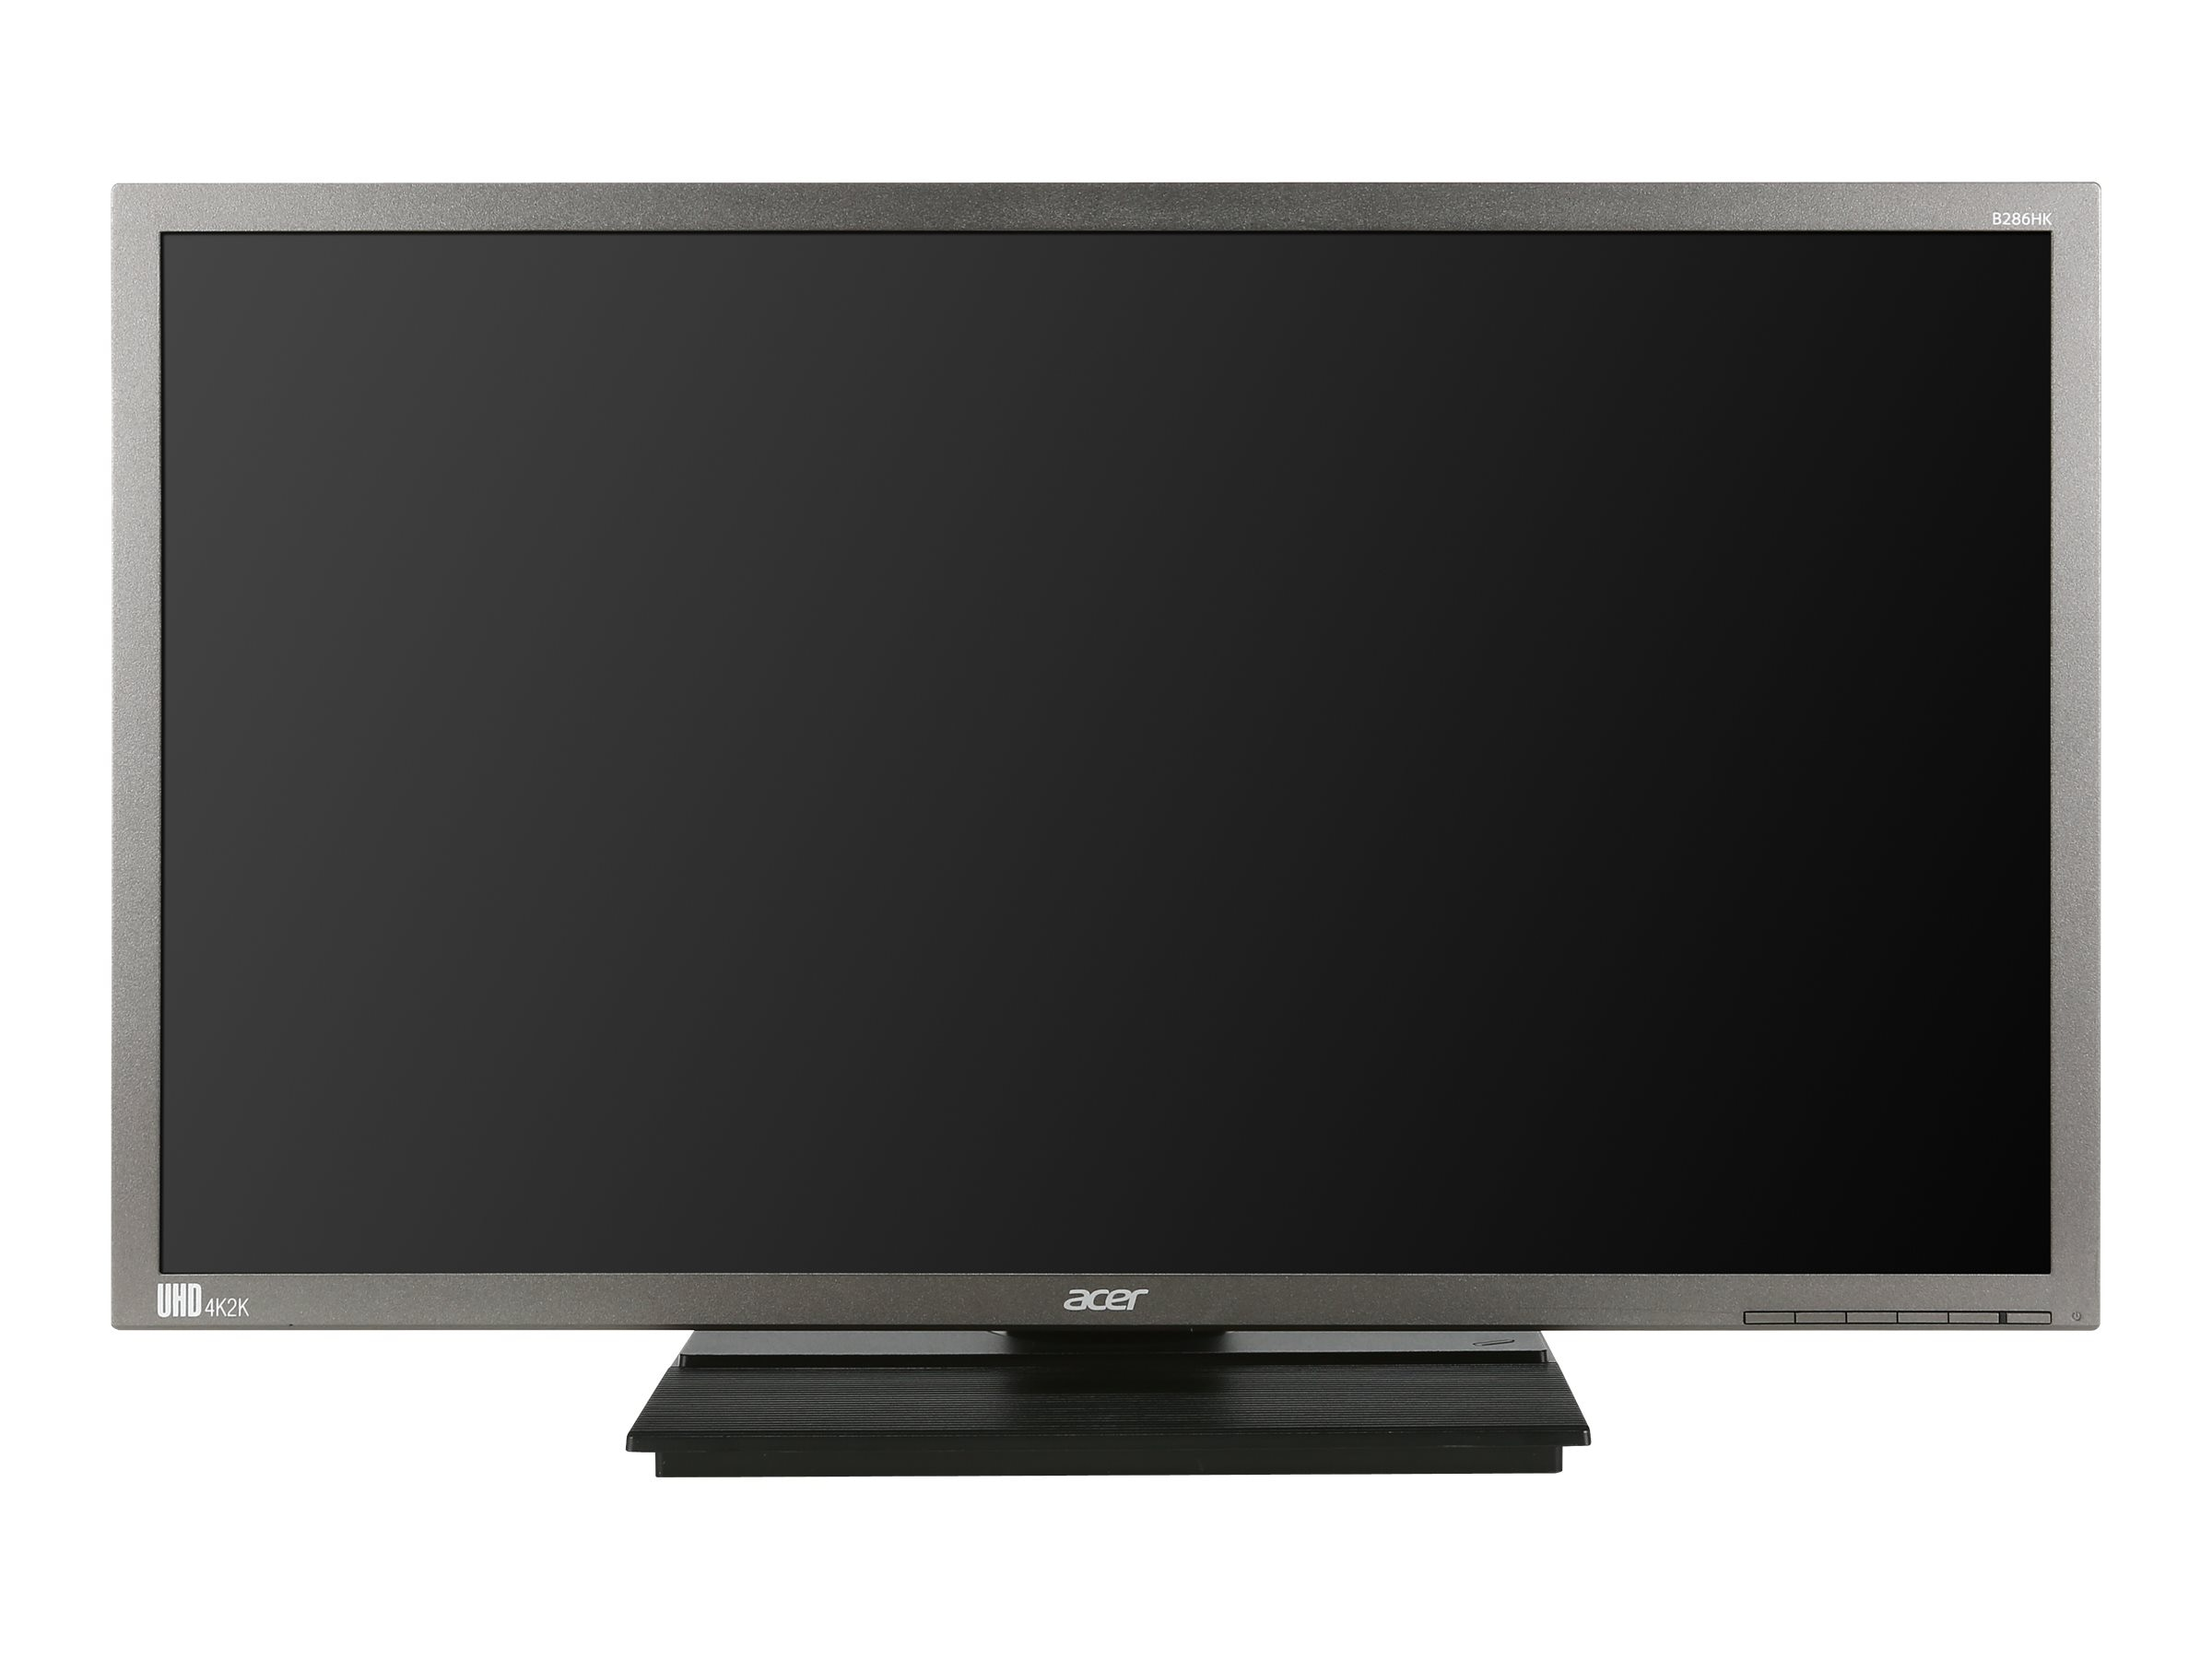 Acer 28 B286HK ymjdpprz 4K LED-LCD Display, Black